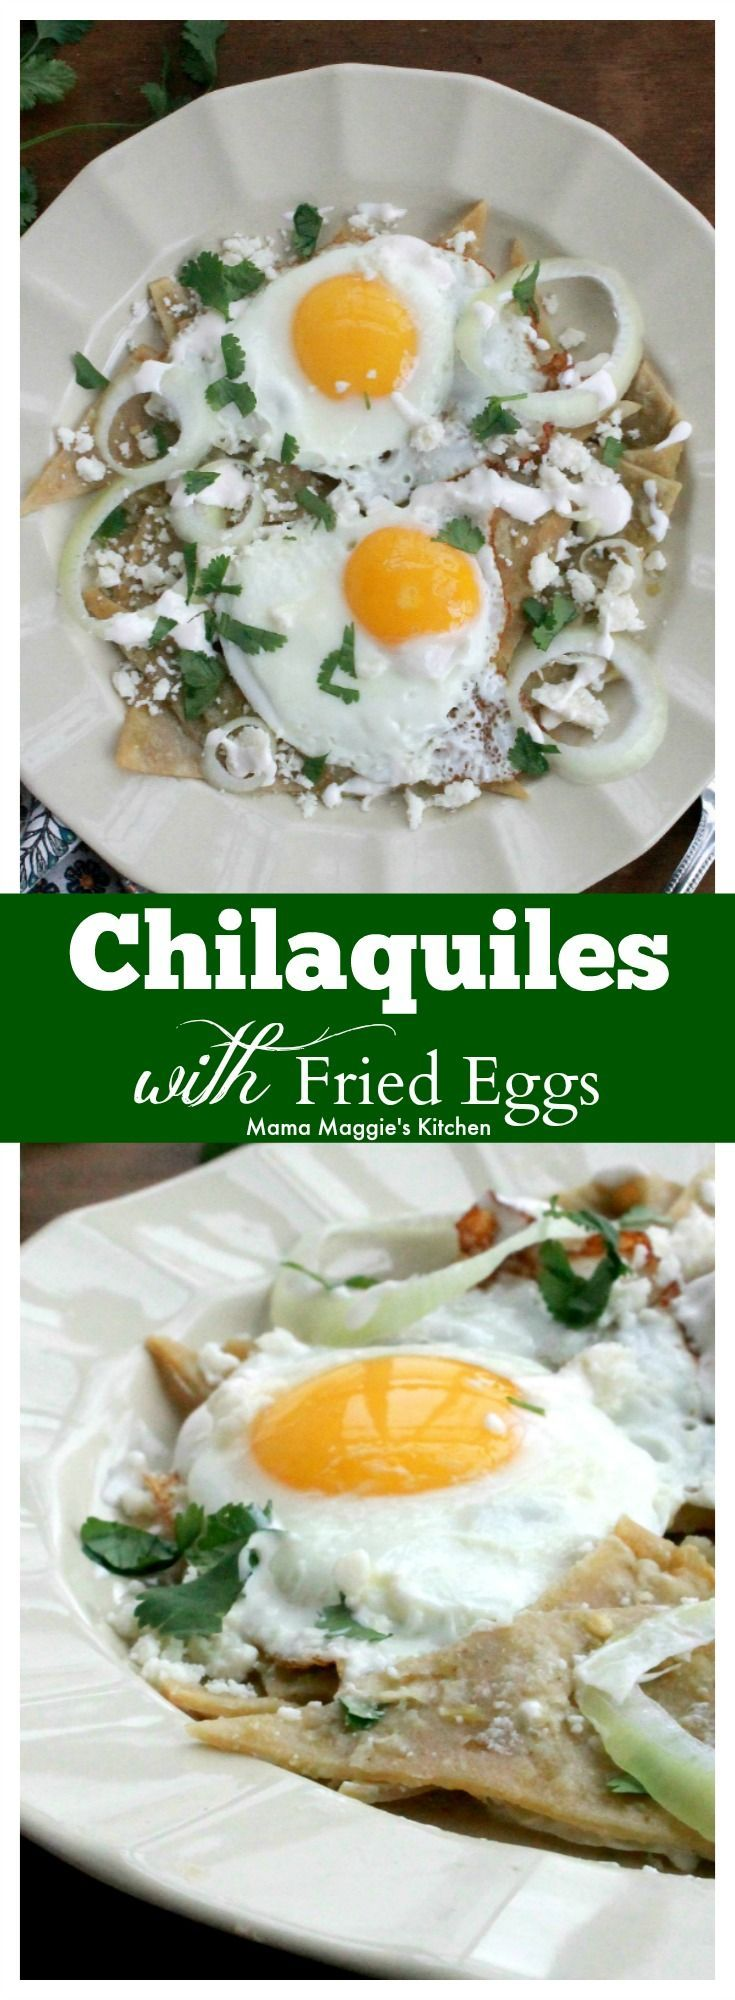 Chilaquiles with Fried Eggs, or Chilaquiles con Huevos Fritos, is a delicious and flavorful breakfast dish that's a favorite in Mexico. by Mama Maggie's Kitchen #sponsored